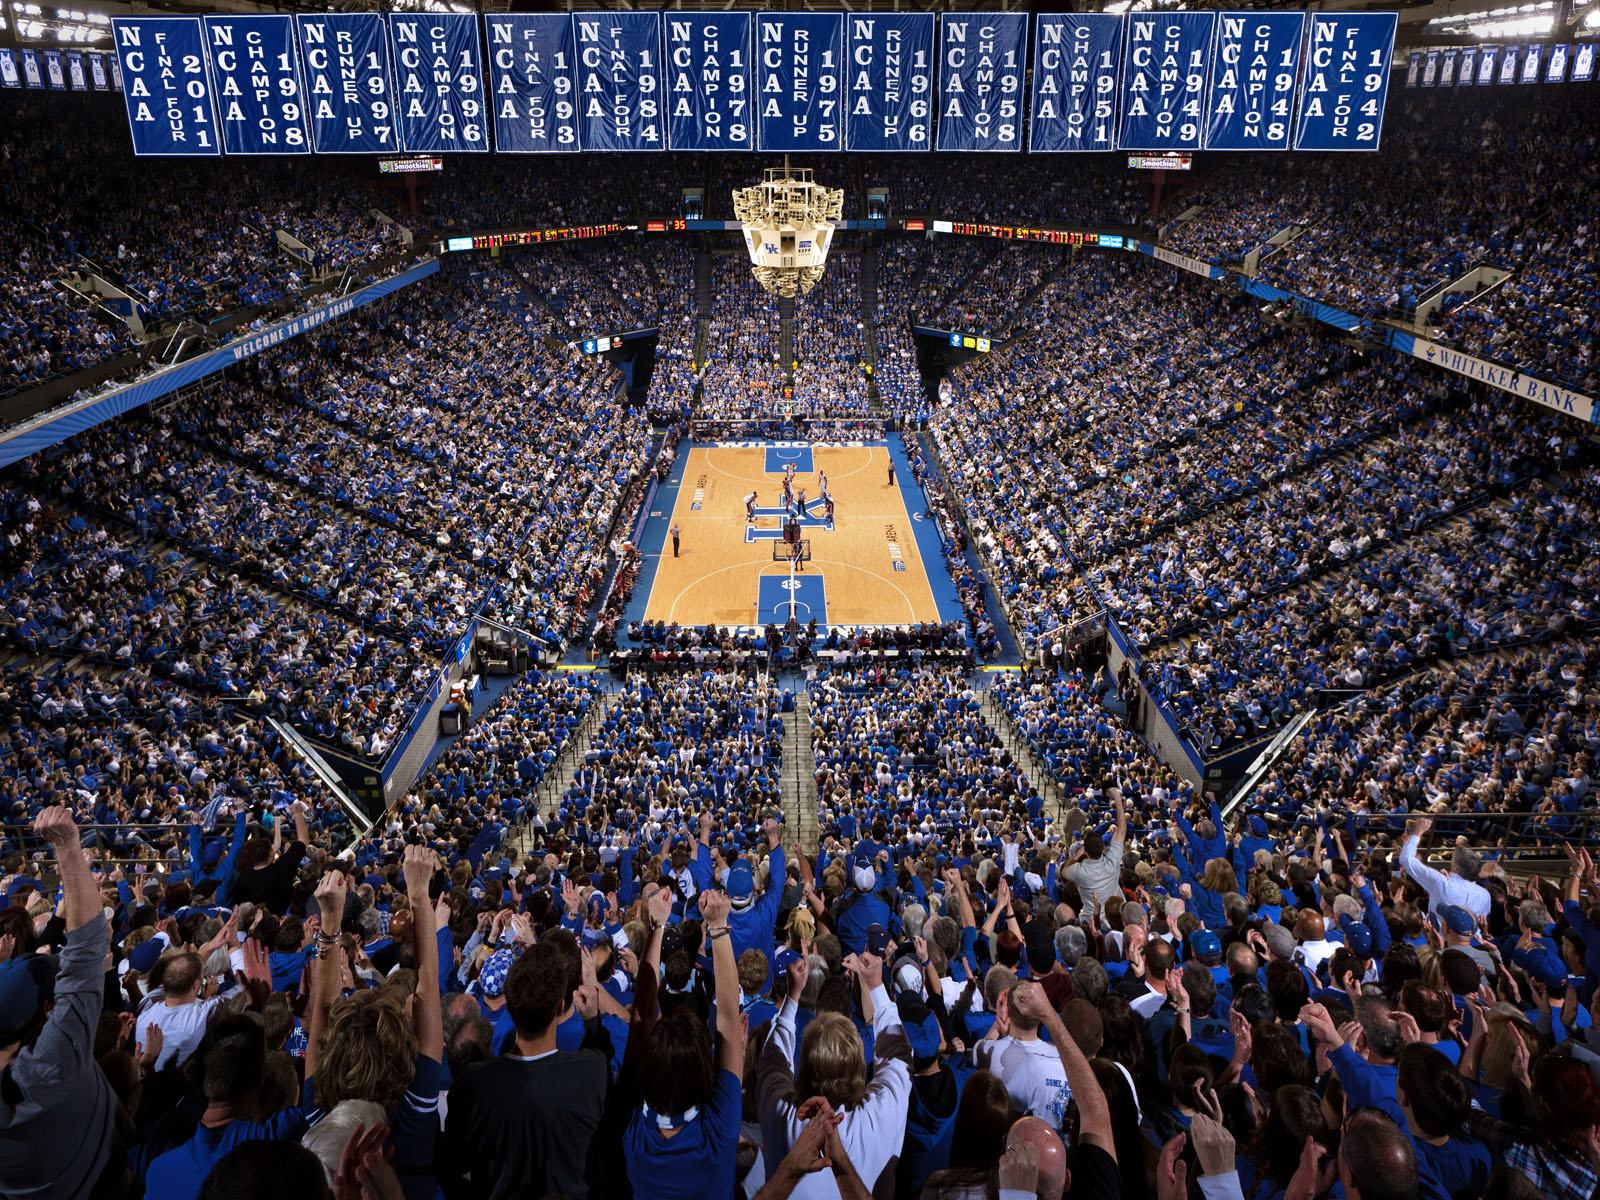 Download Basketball Stadium Wallpaper Gallery